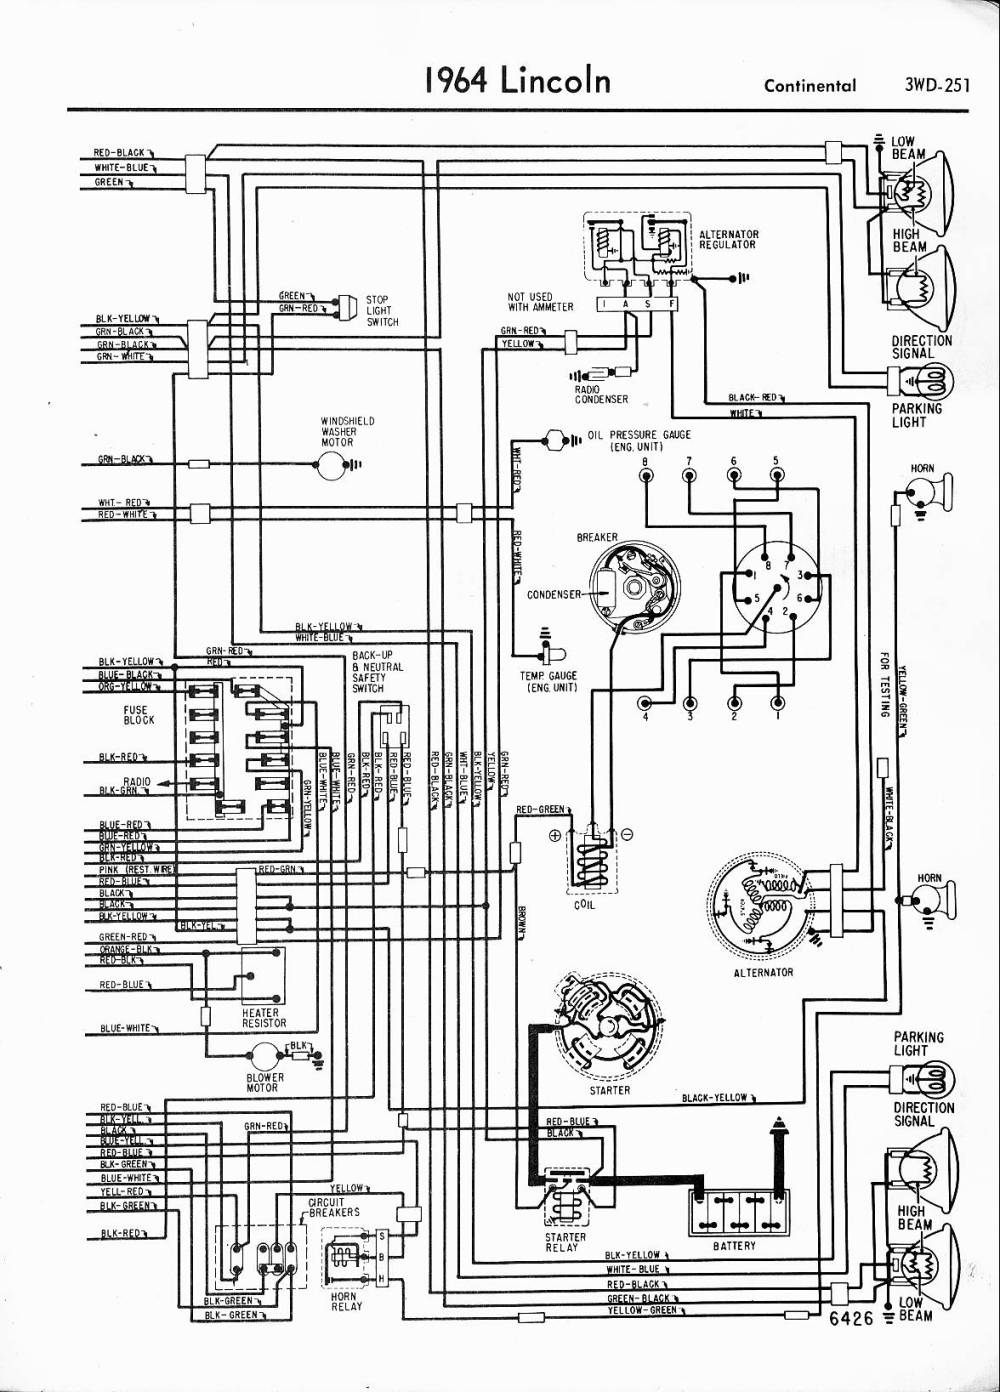 medium resolution of 1969 lincoln wiring diagram wiring diagram megalincoln continental wiring diagram wiring diagram val 1969 lincoln wiring